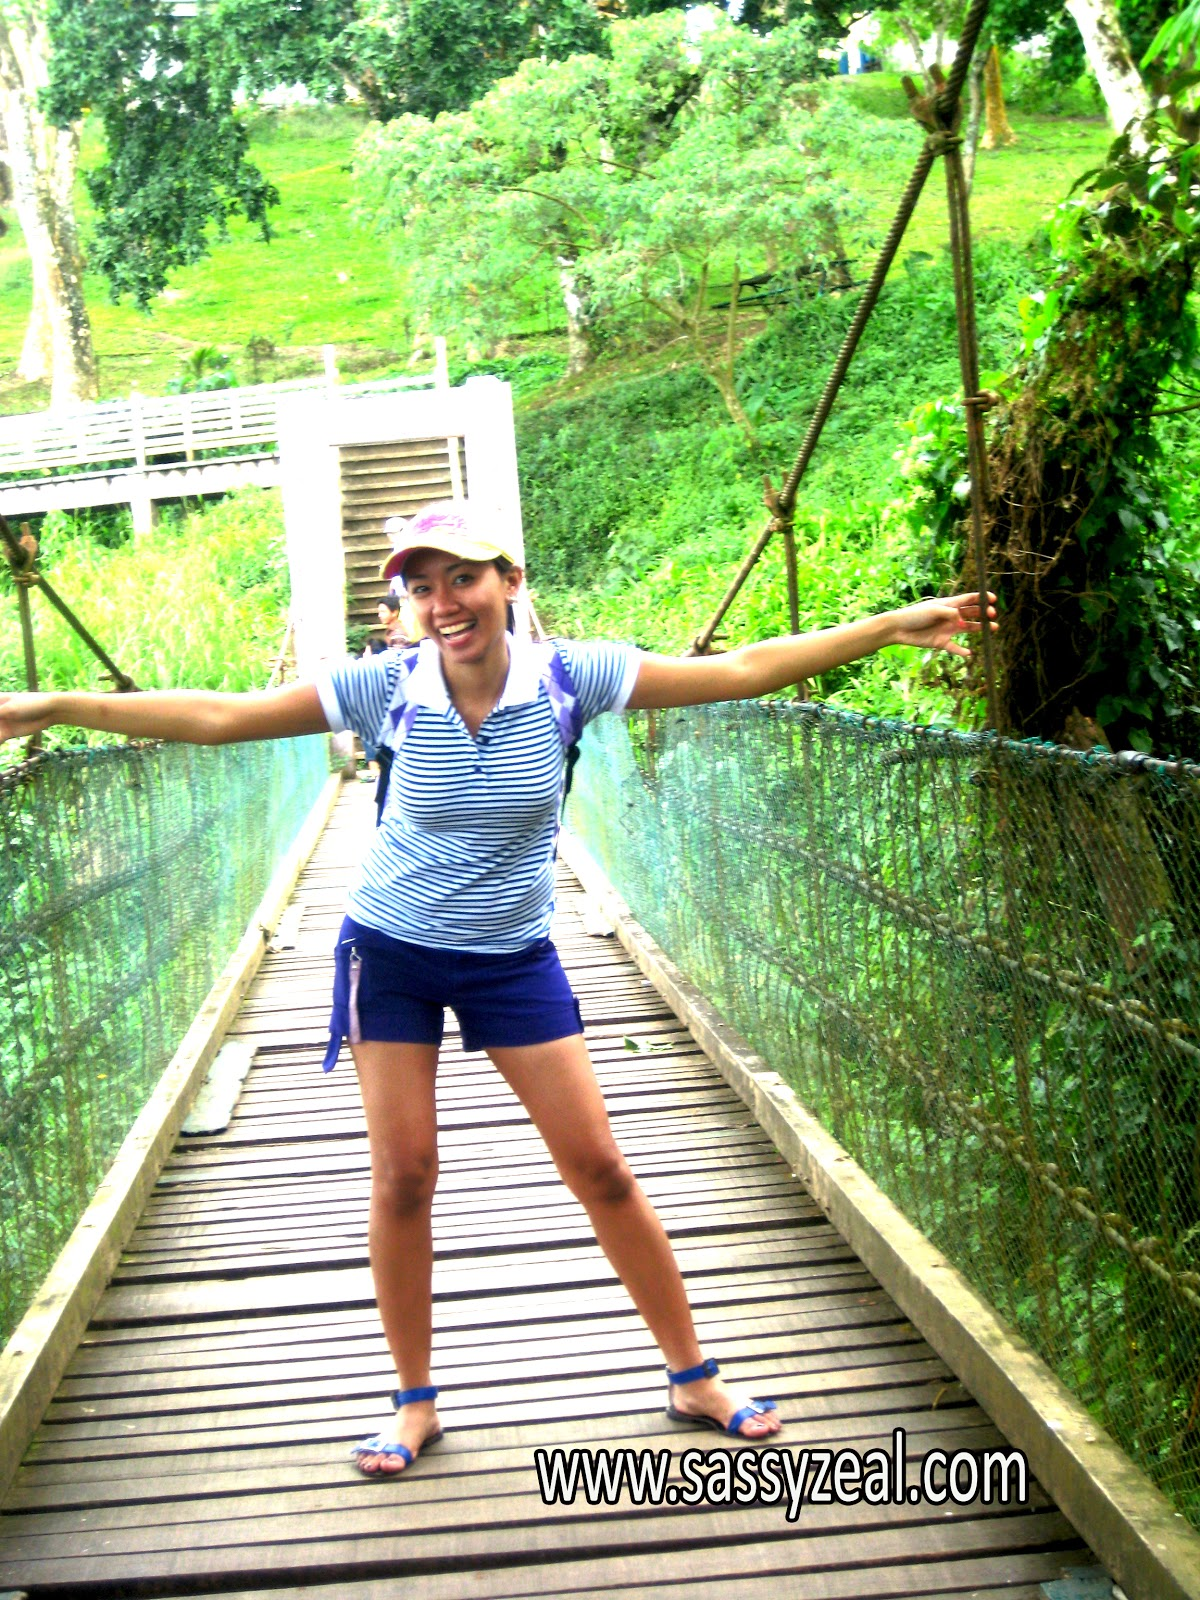 Sassyzeal Must See Places In Tagaytay You Should Not Miss